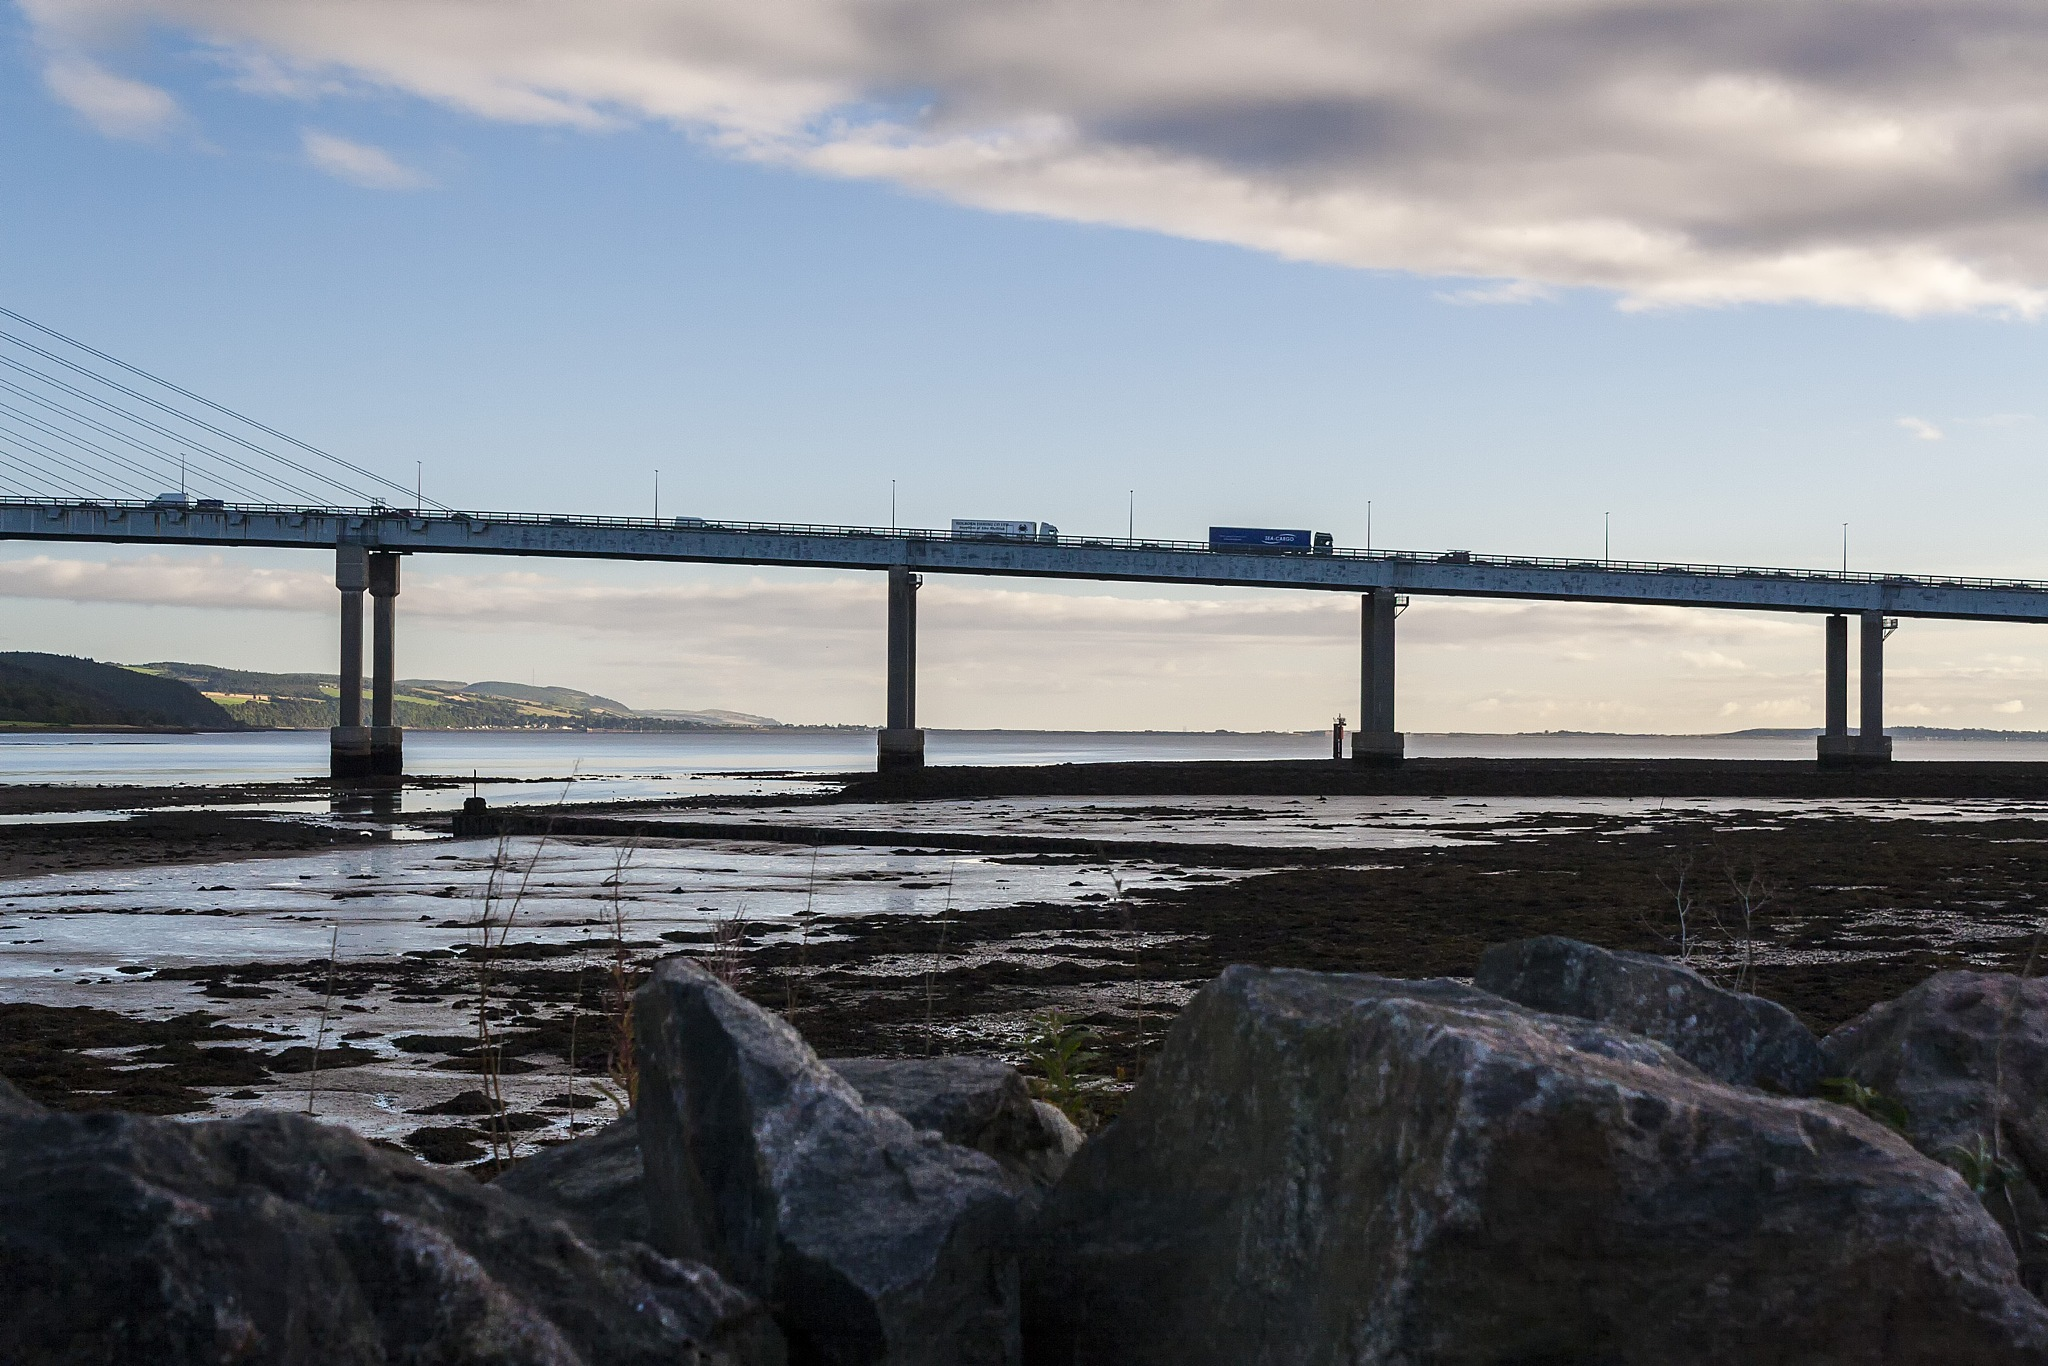 Morning on Kessock Bridge by Domas Rakauskas